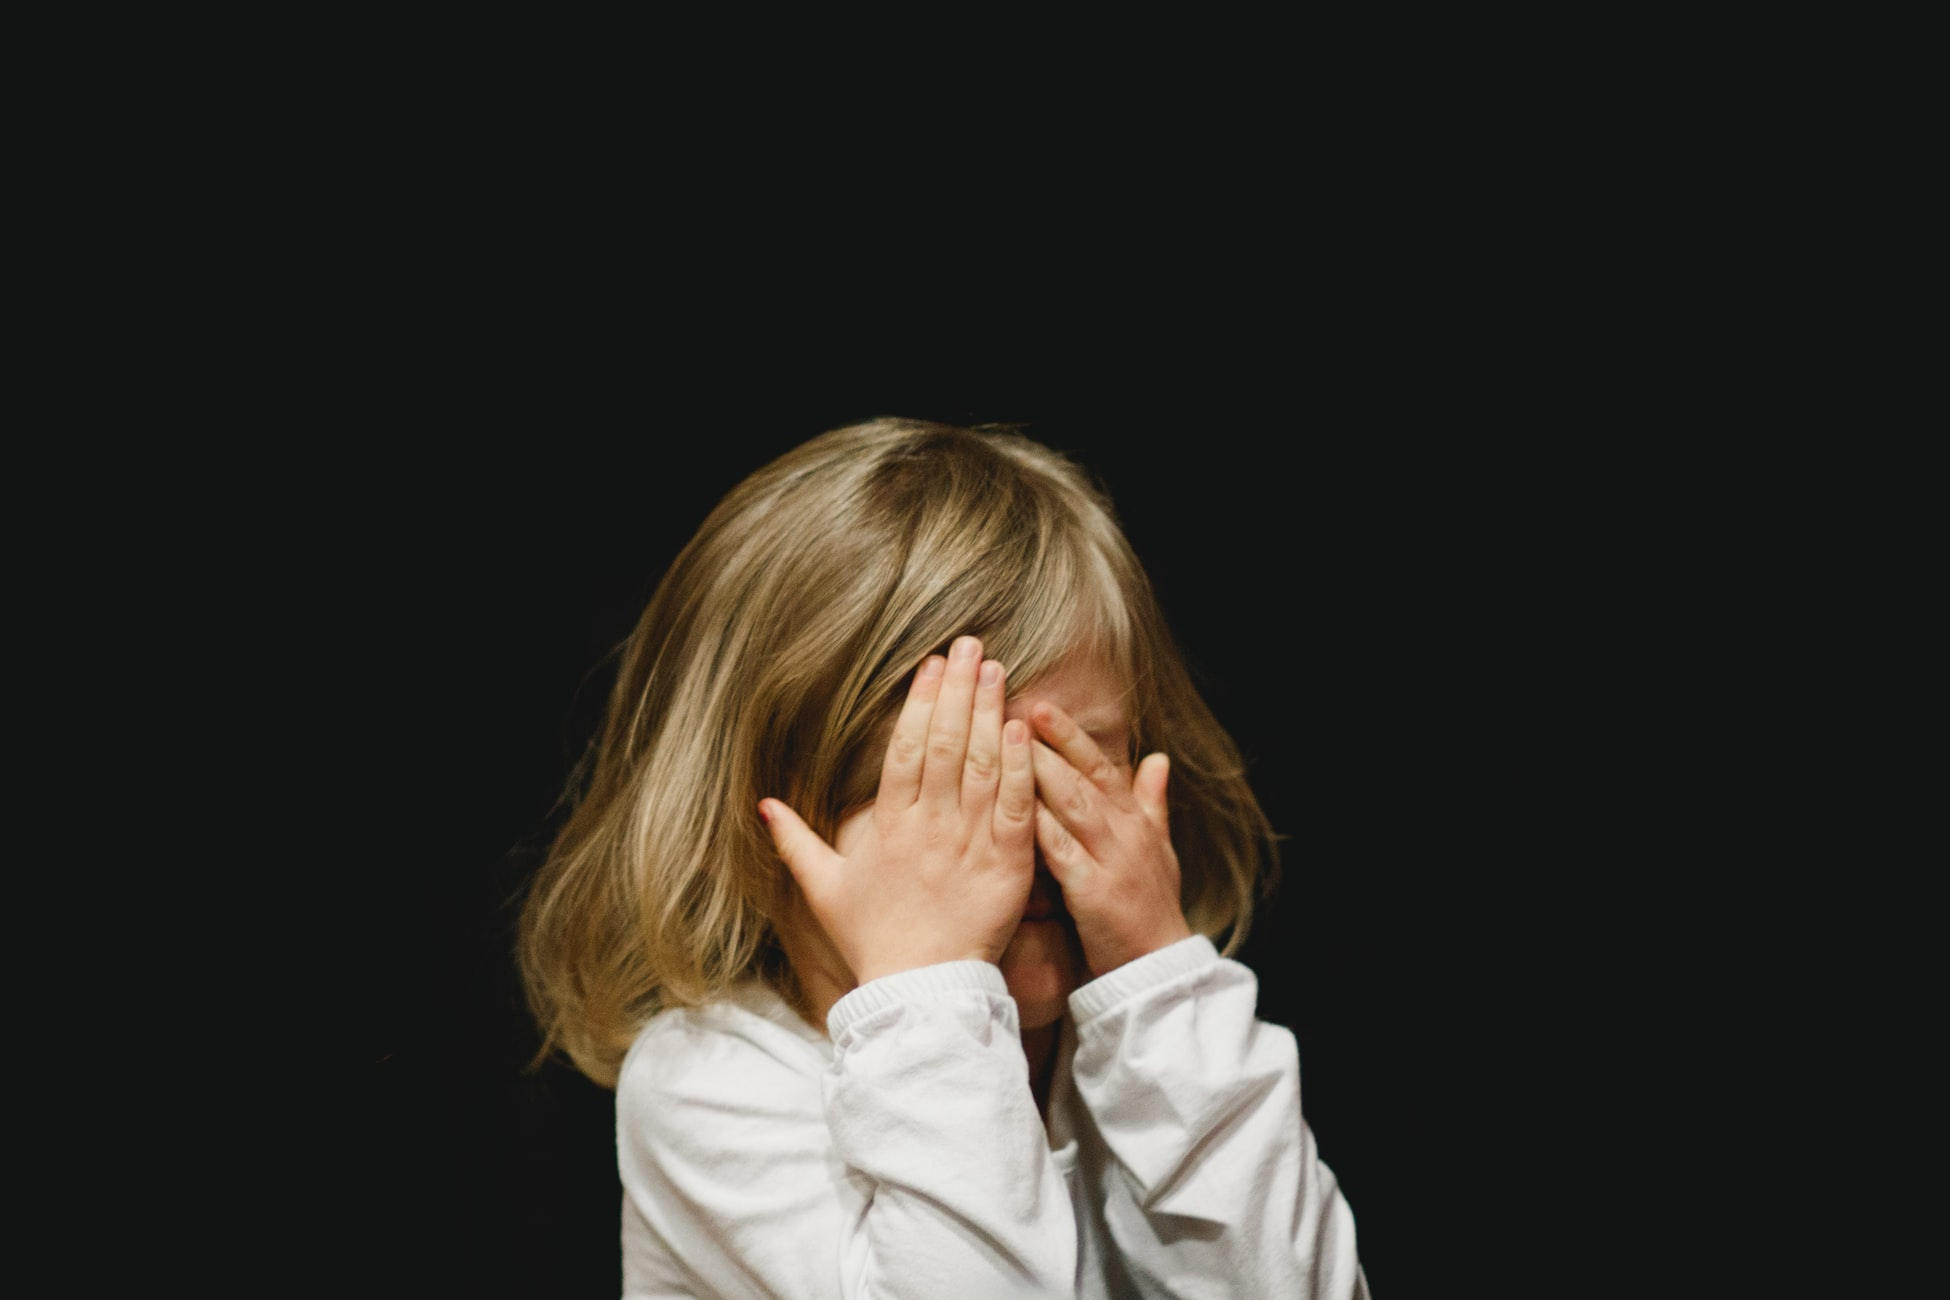 blond girl covering her face with both hands